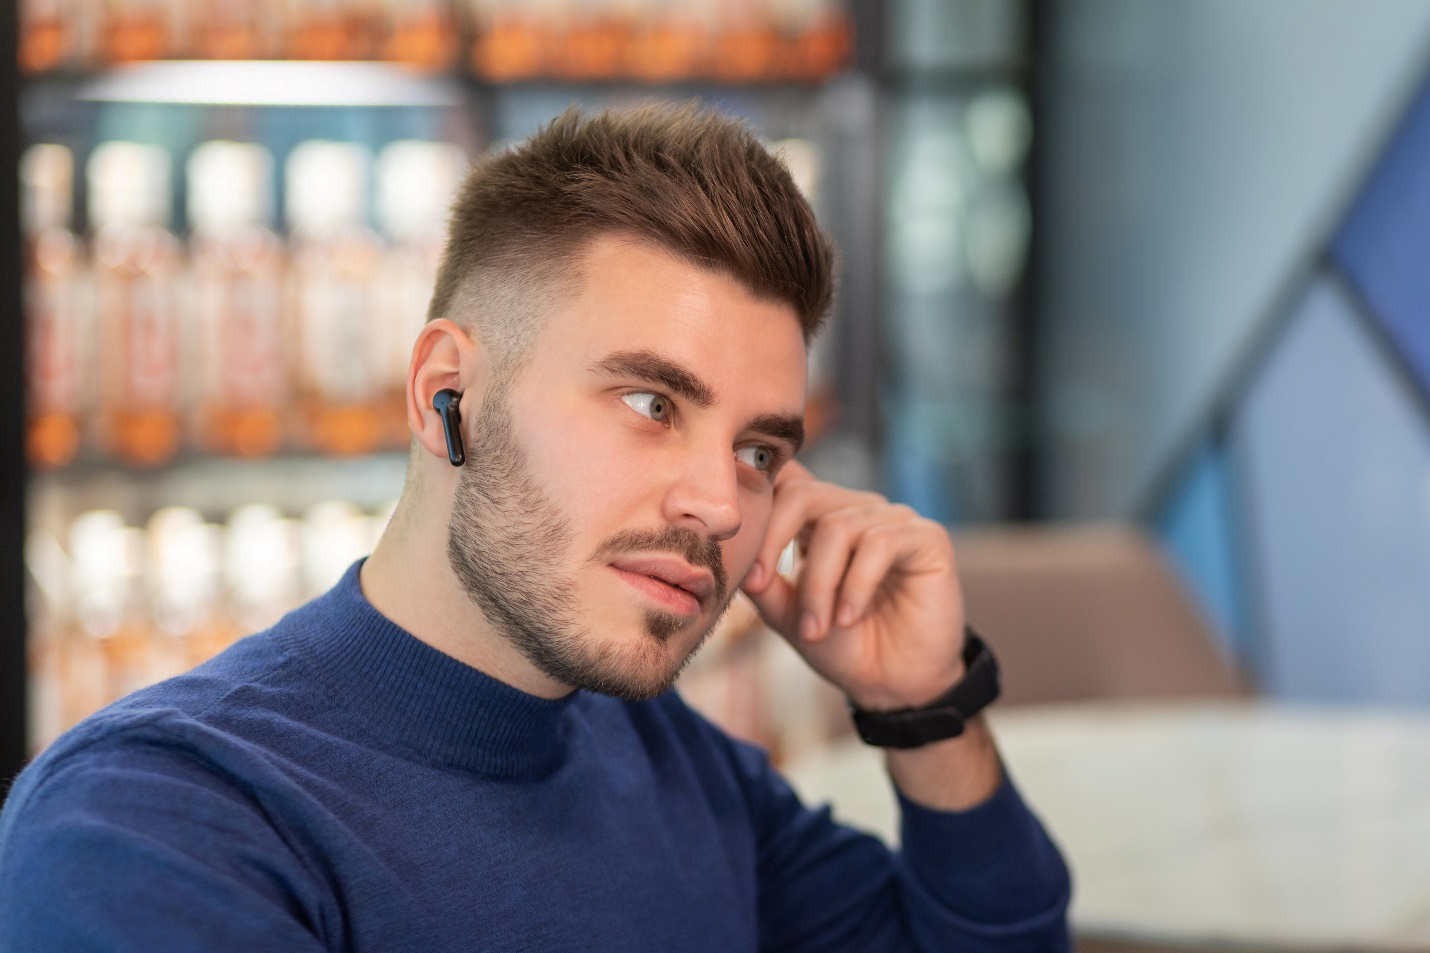 A person with a beard talking on a cell phone Description automatically generated with low confidence